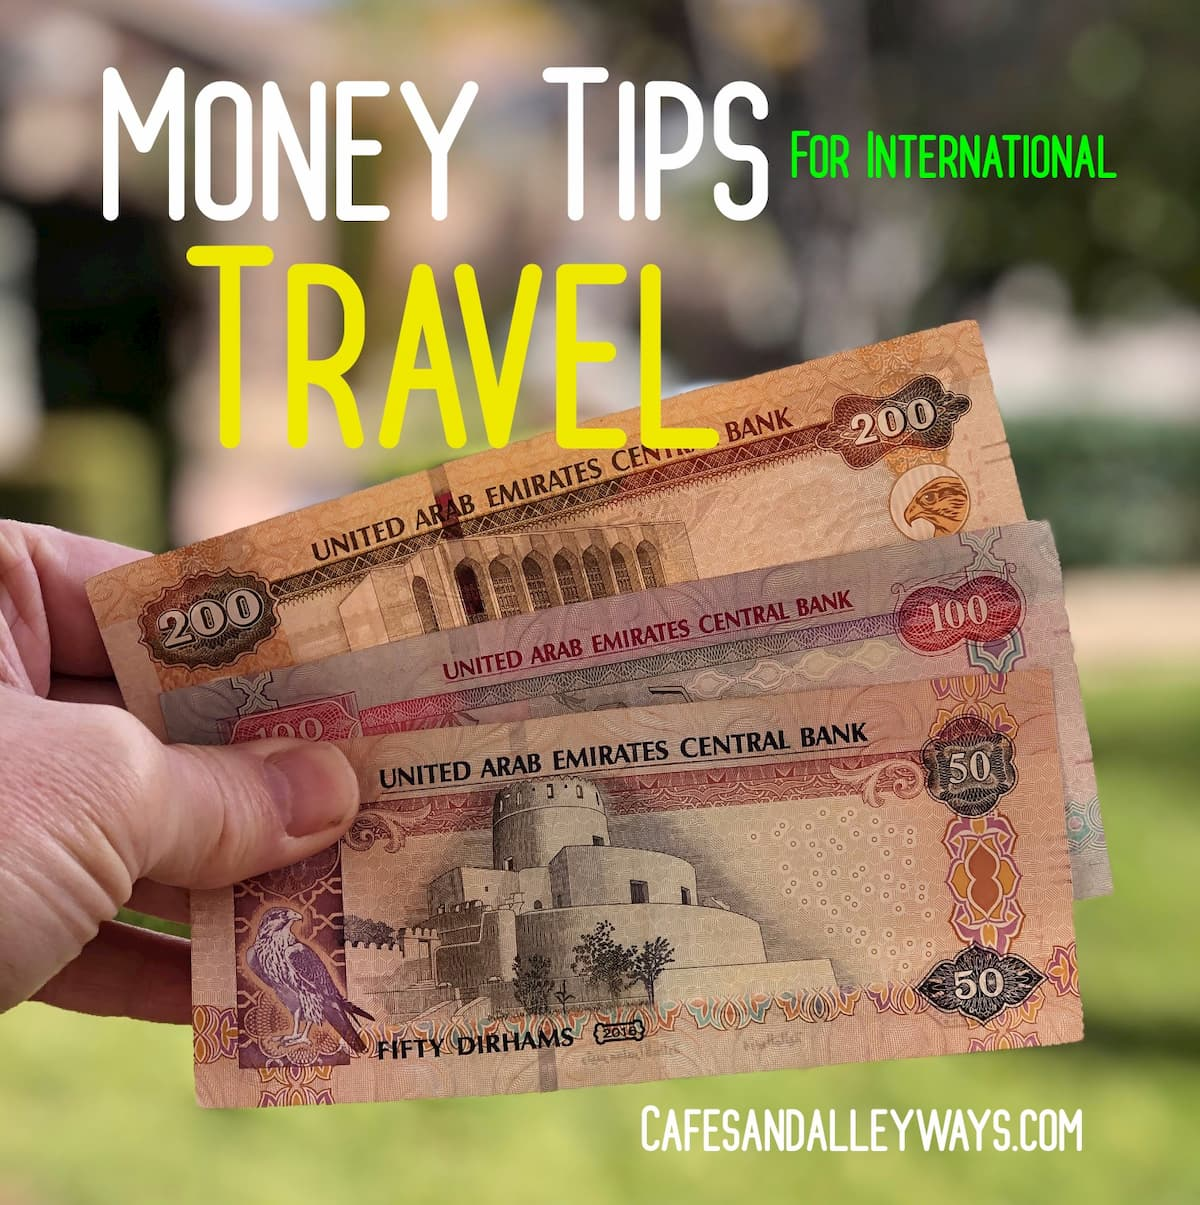 Money Tips for Traveling Internationally